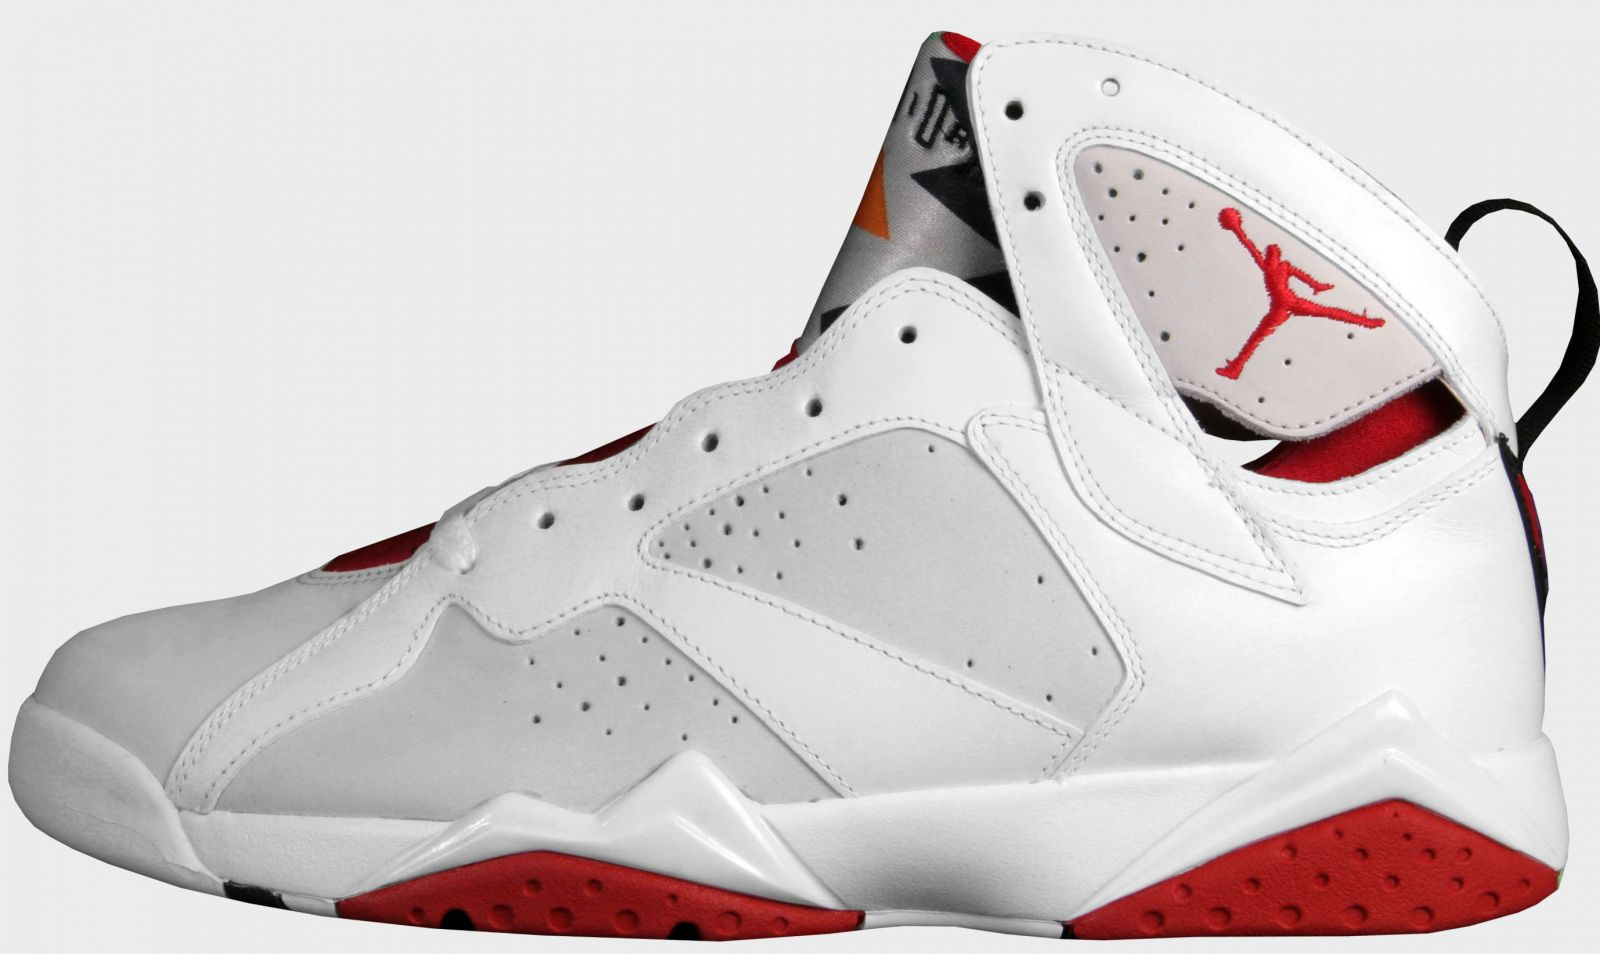 promo code 3438a 89070 Air Jordan 7: The Definitive Guide To Colorways | Sole Collector